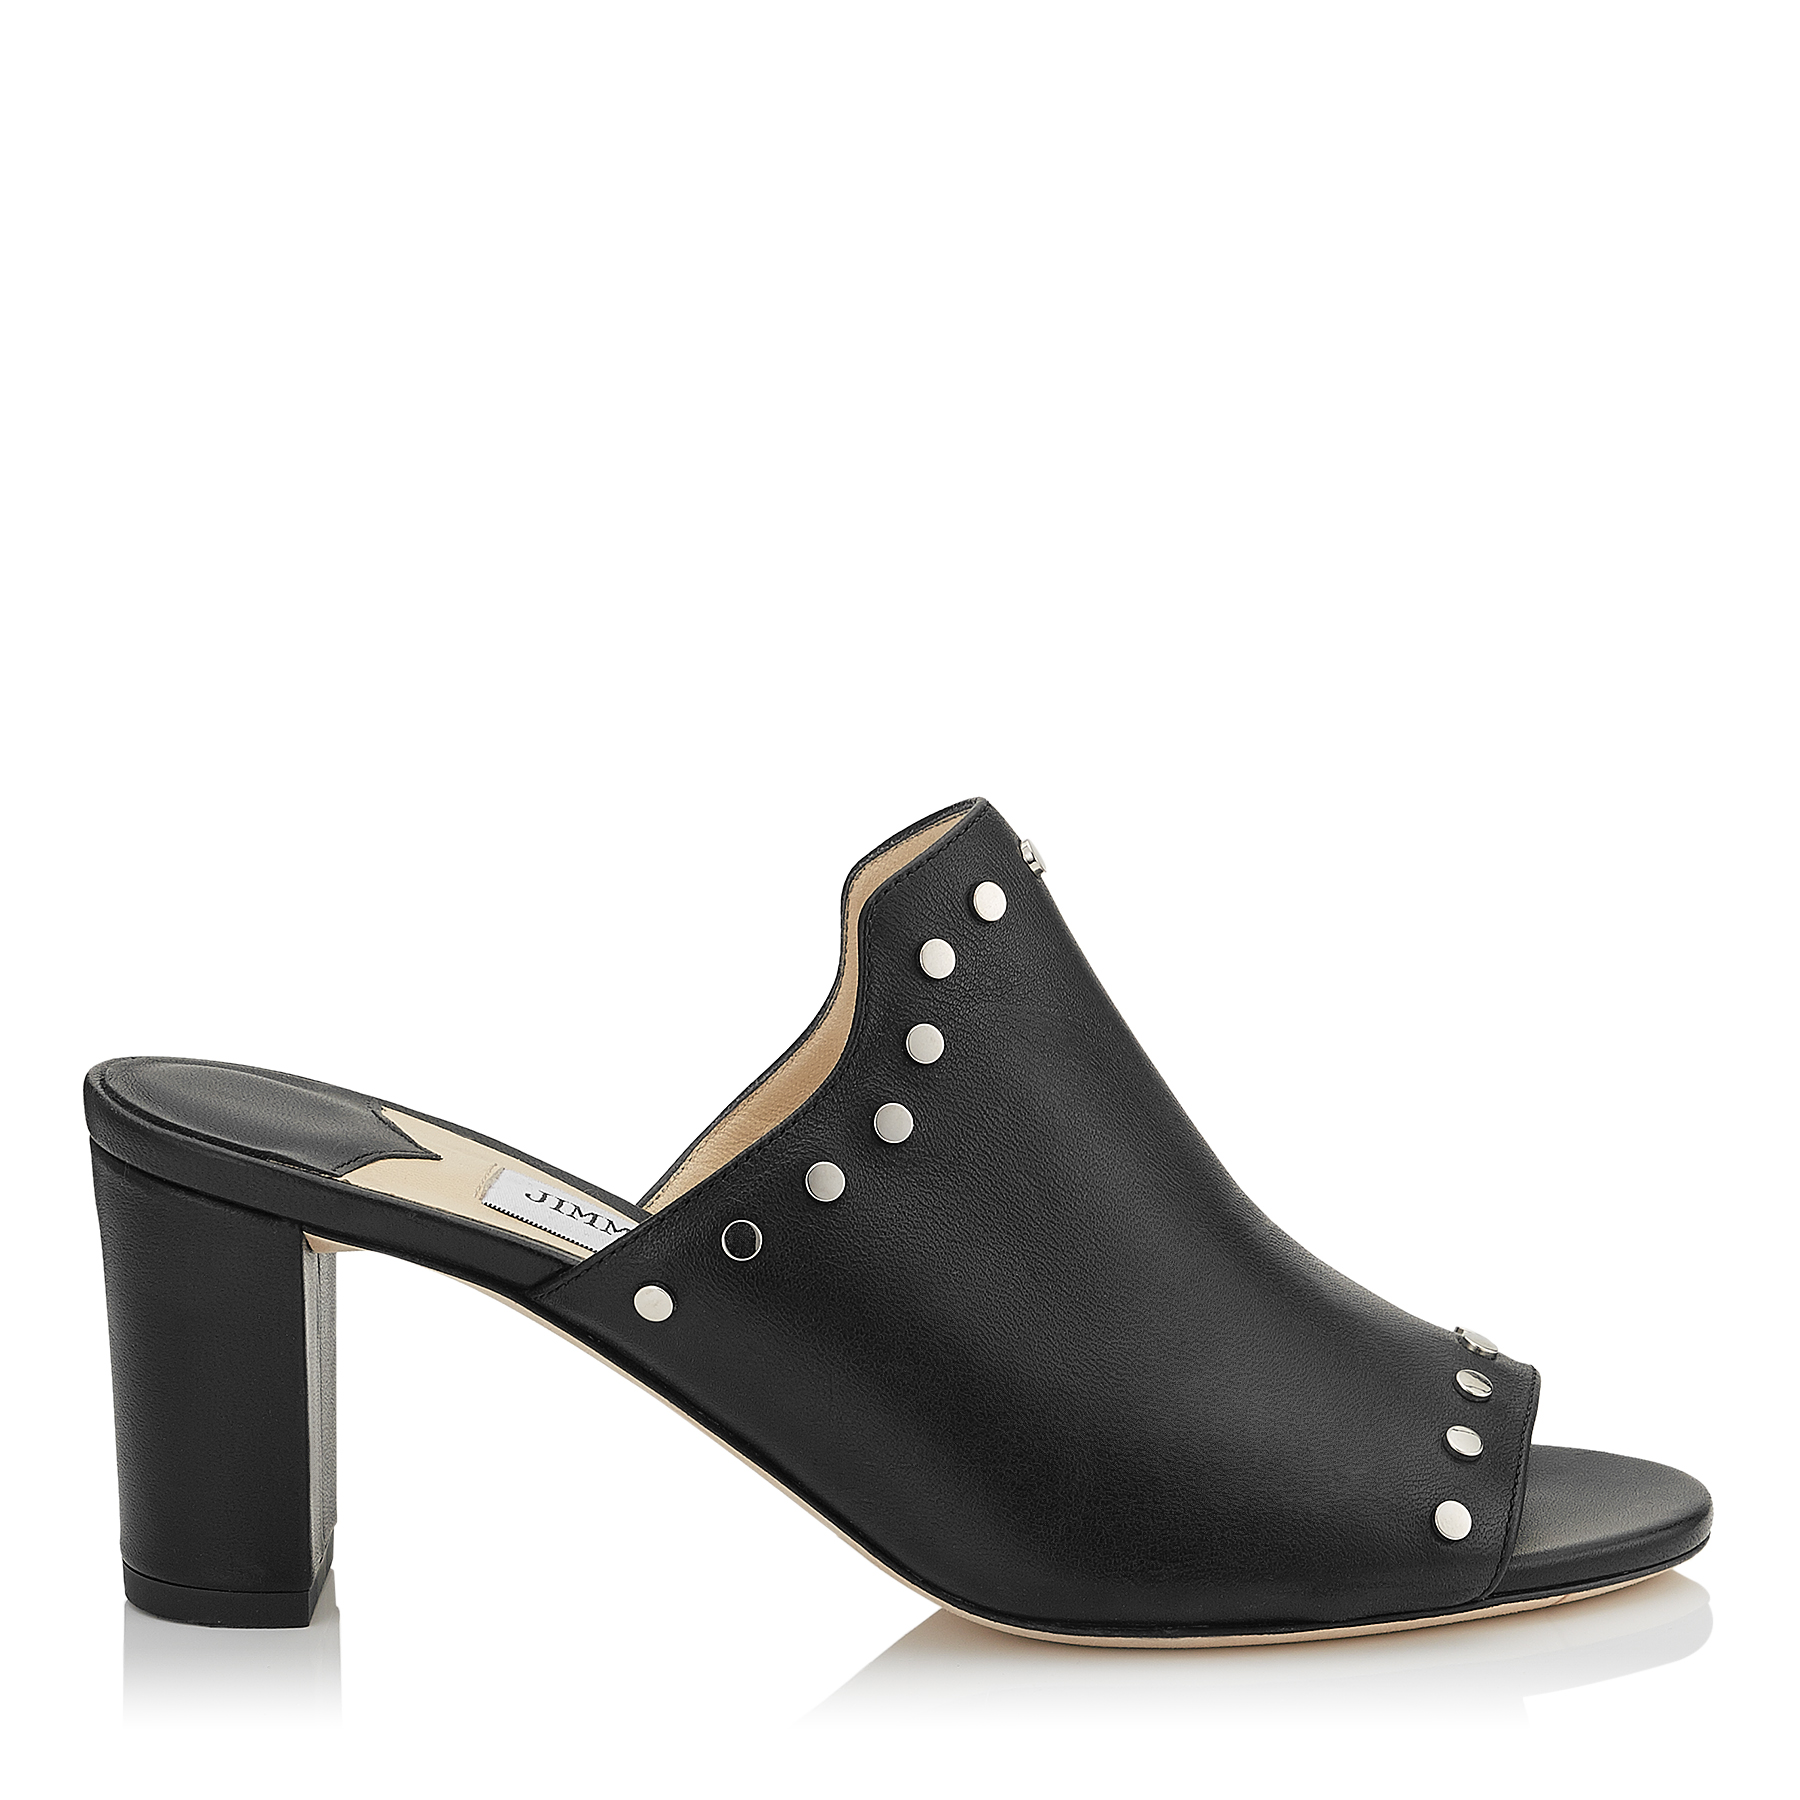 MYLA 65 Black Nappa Leather Mules with Silver Studs